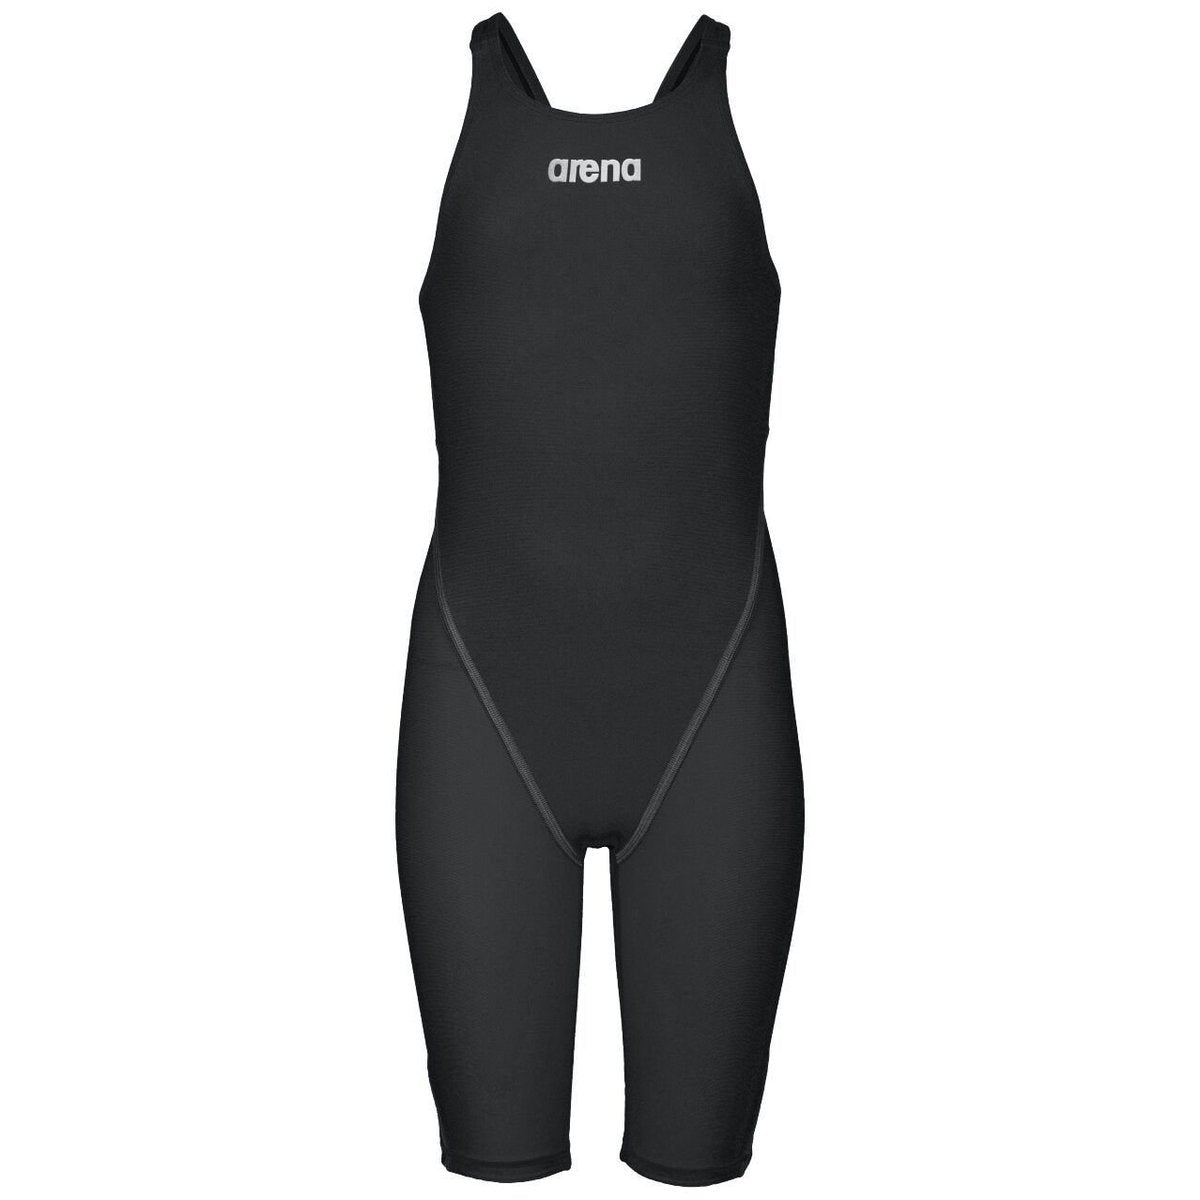 ARENA POWERSKIN ST 2.0 Girl's Open Back - Black, Royal-TechSuits.ca